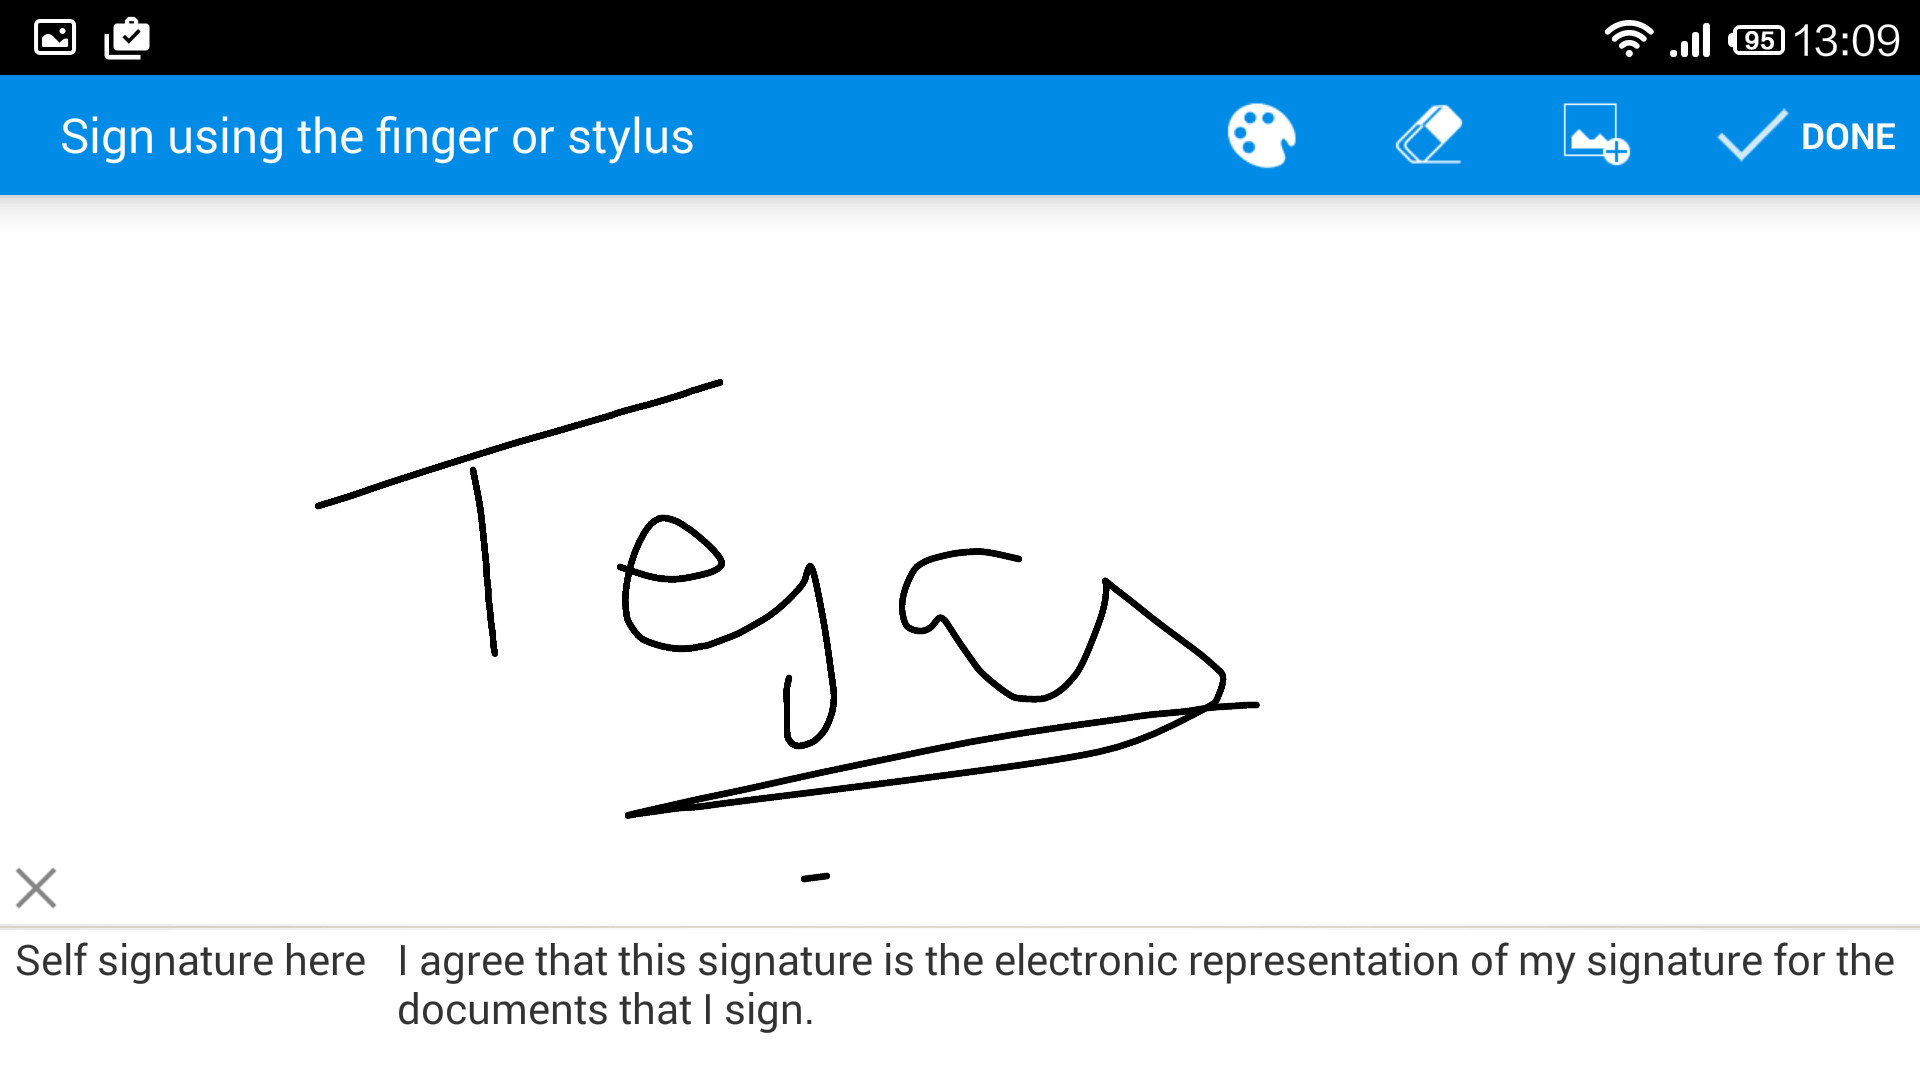 Draw Signature using finger or stylus